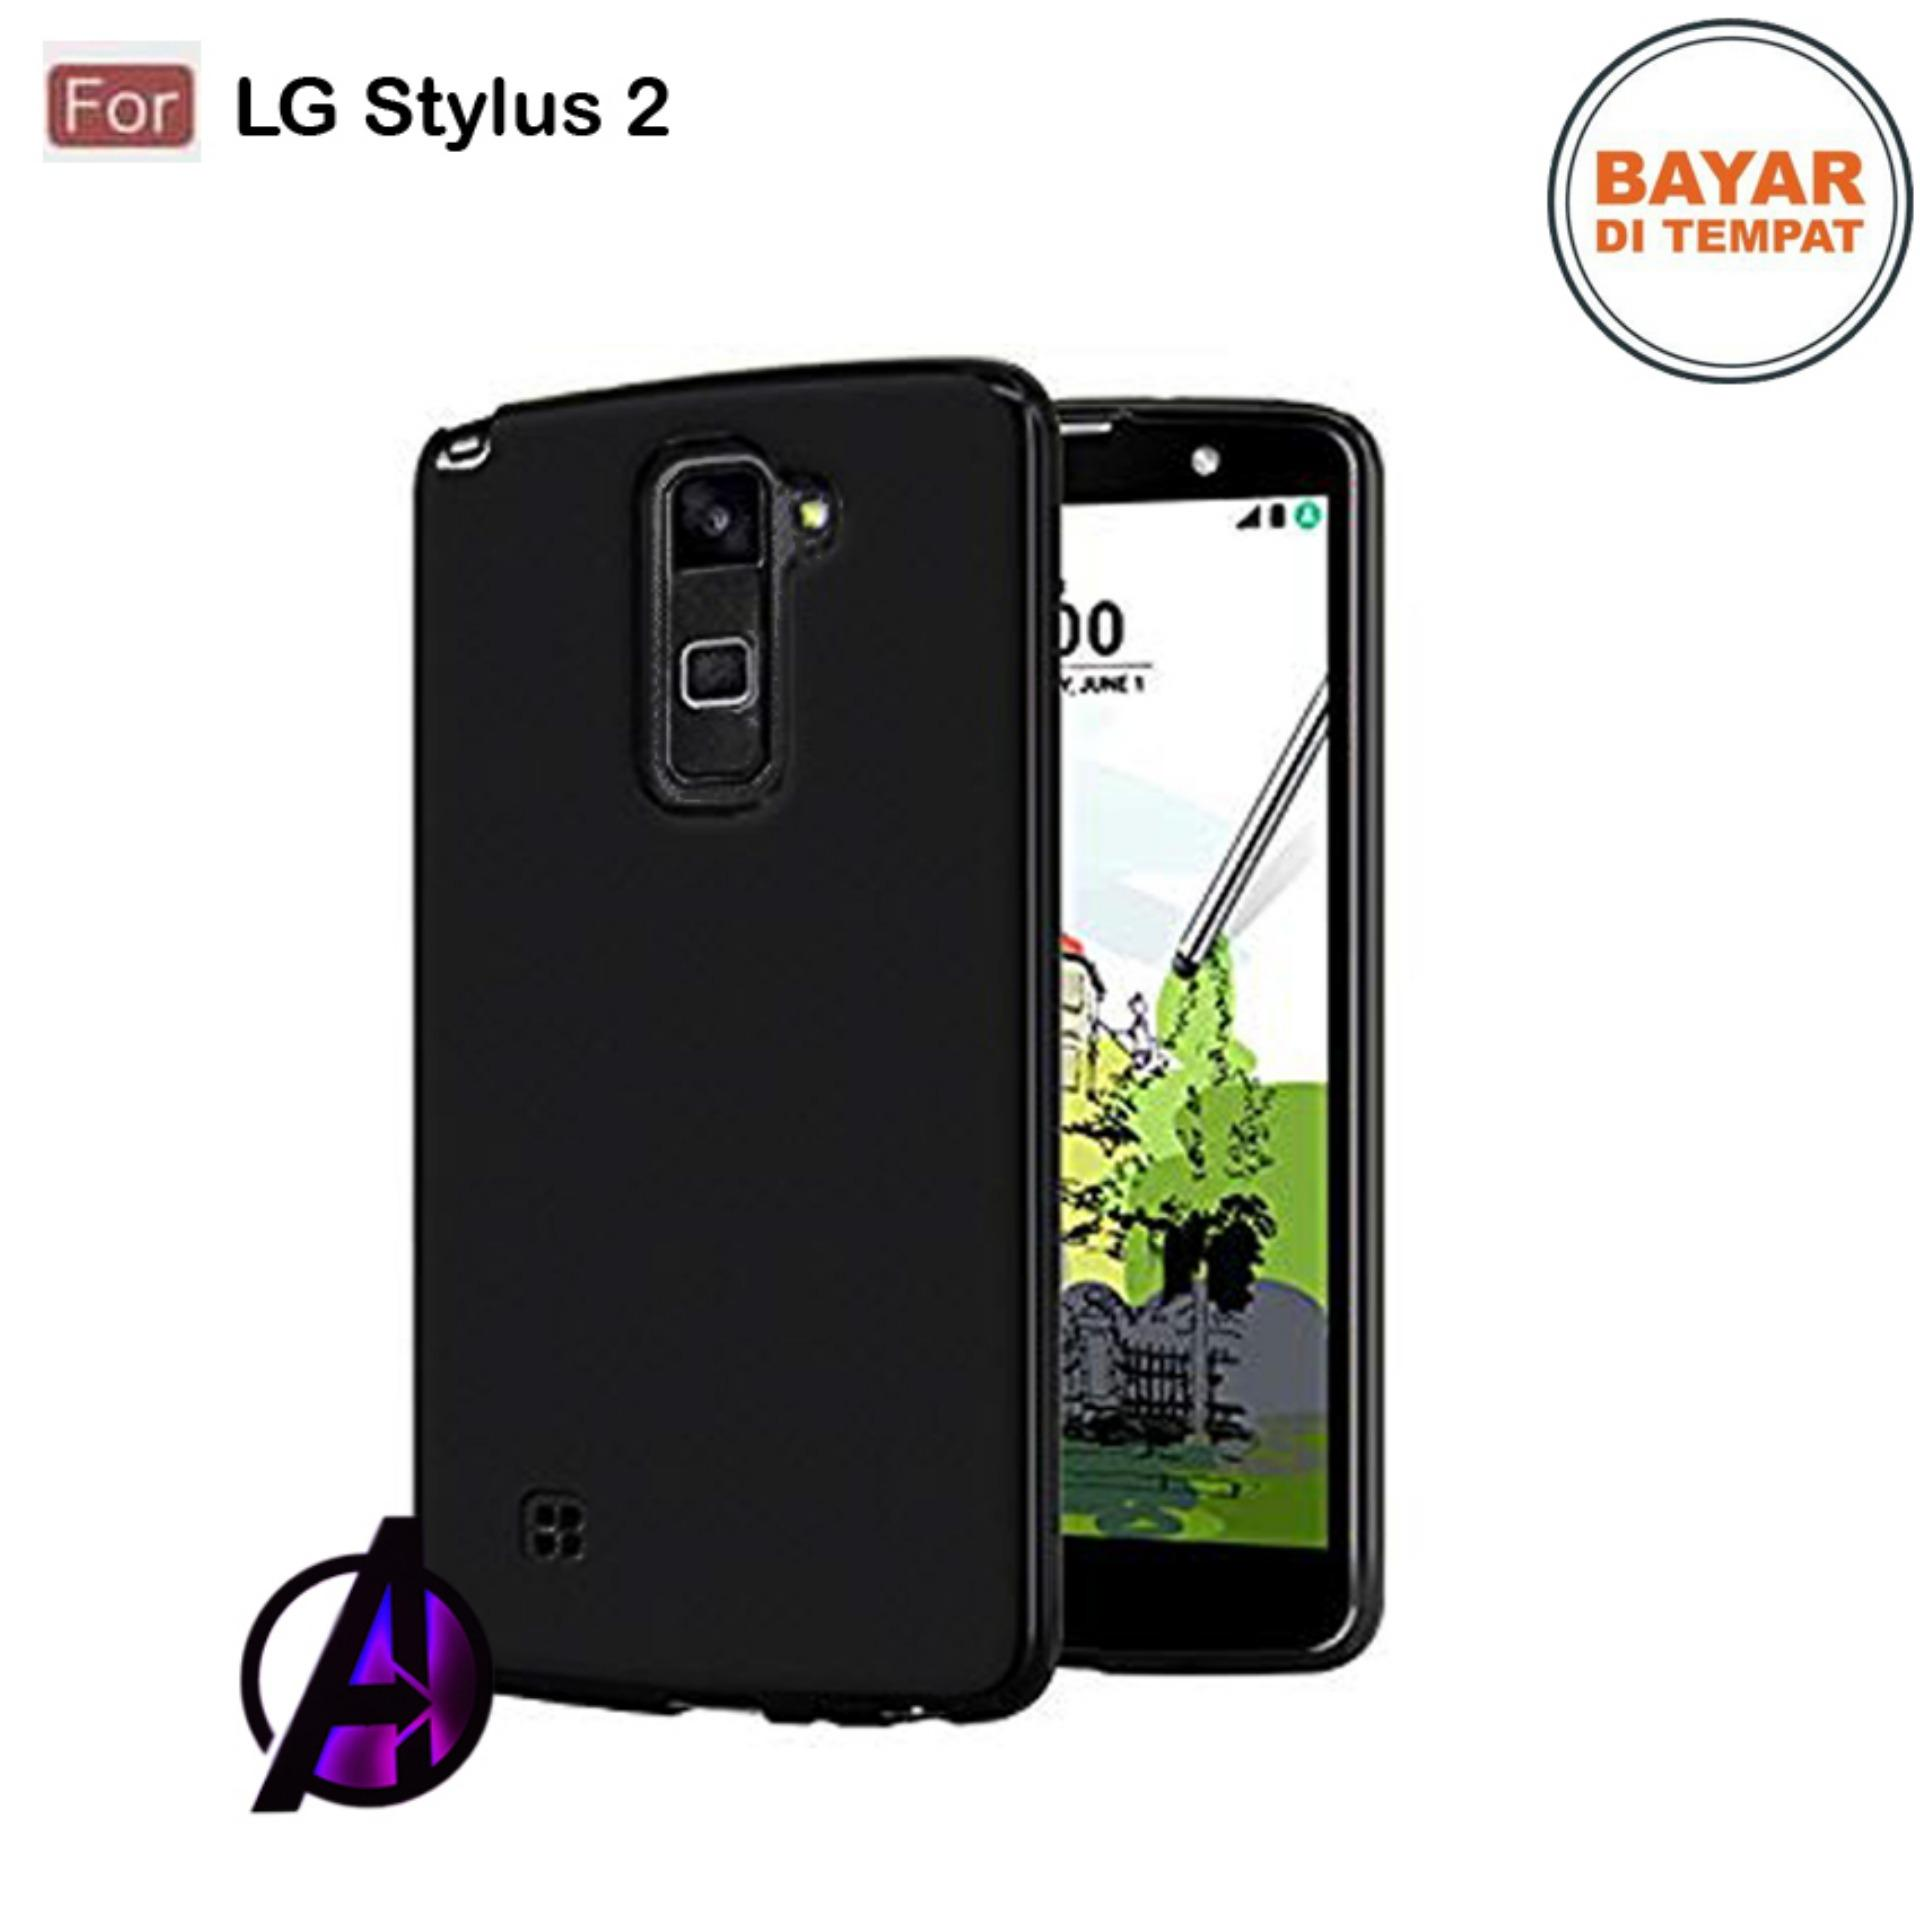 Case Matte Black Soft Slim Casing Handphone LG Stylus 2